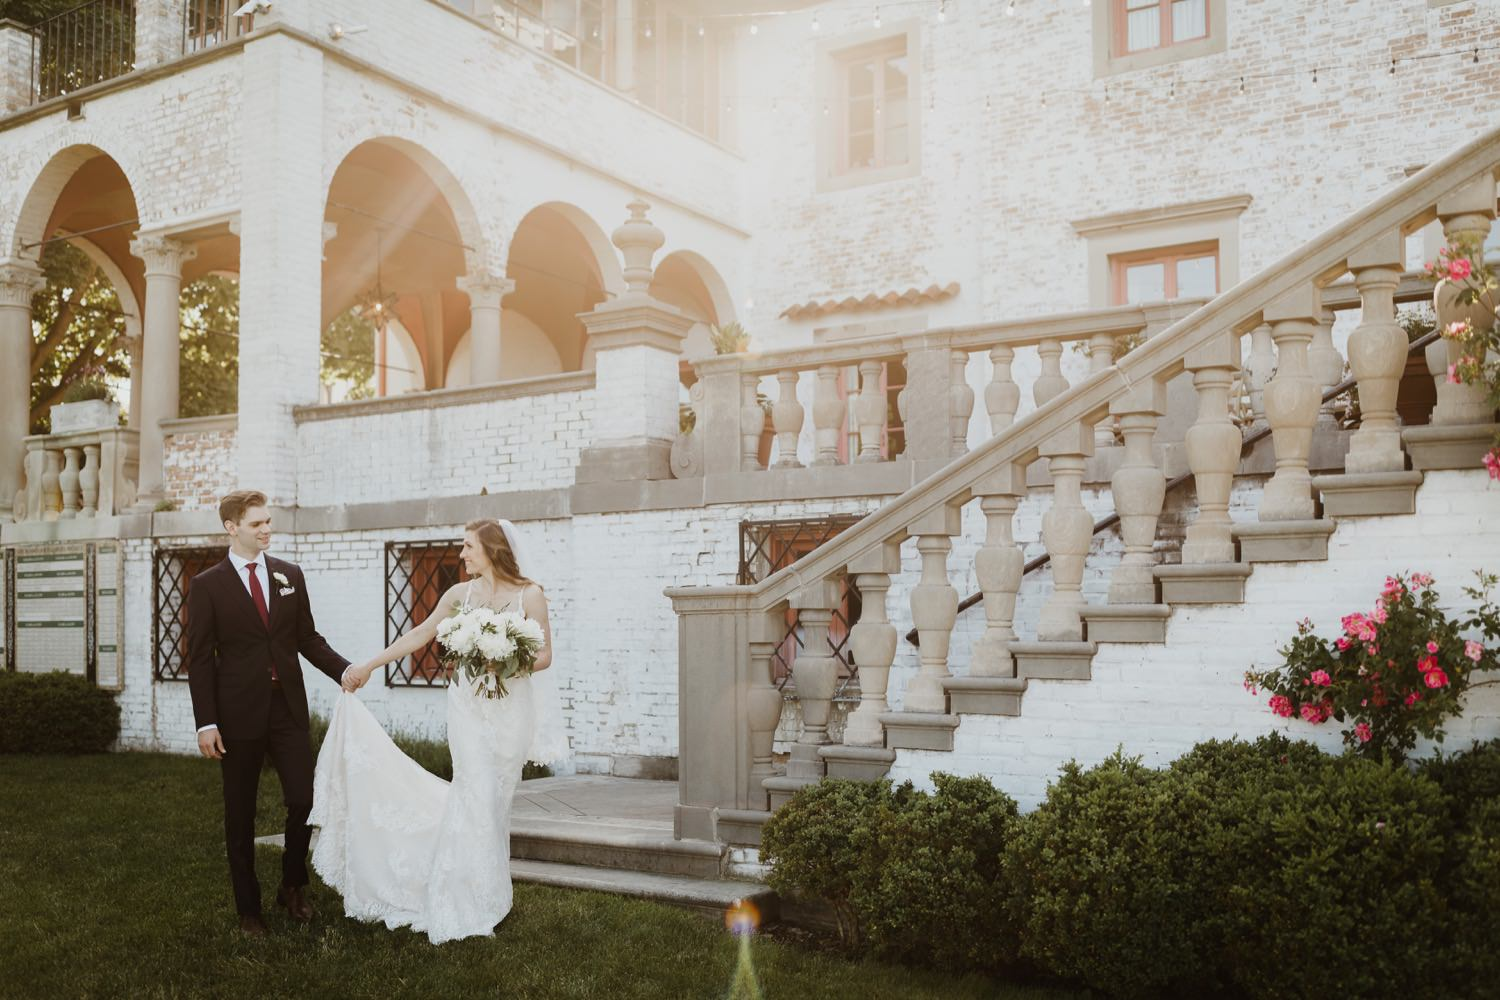 Bride and groom walk at the gardens of Villa Terrace in Milwaukee on their wedding day